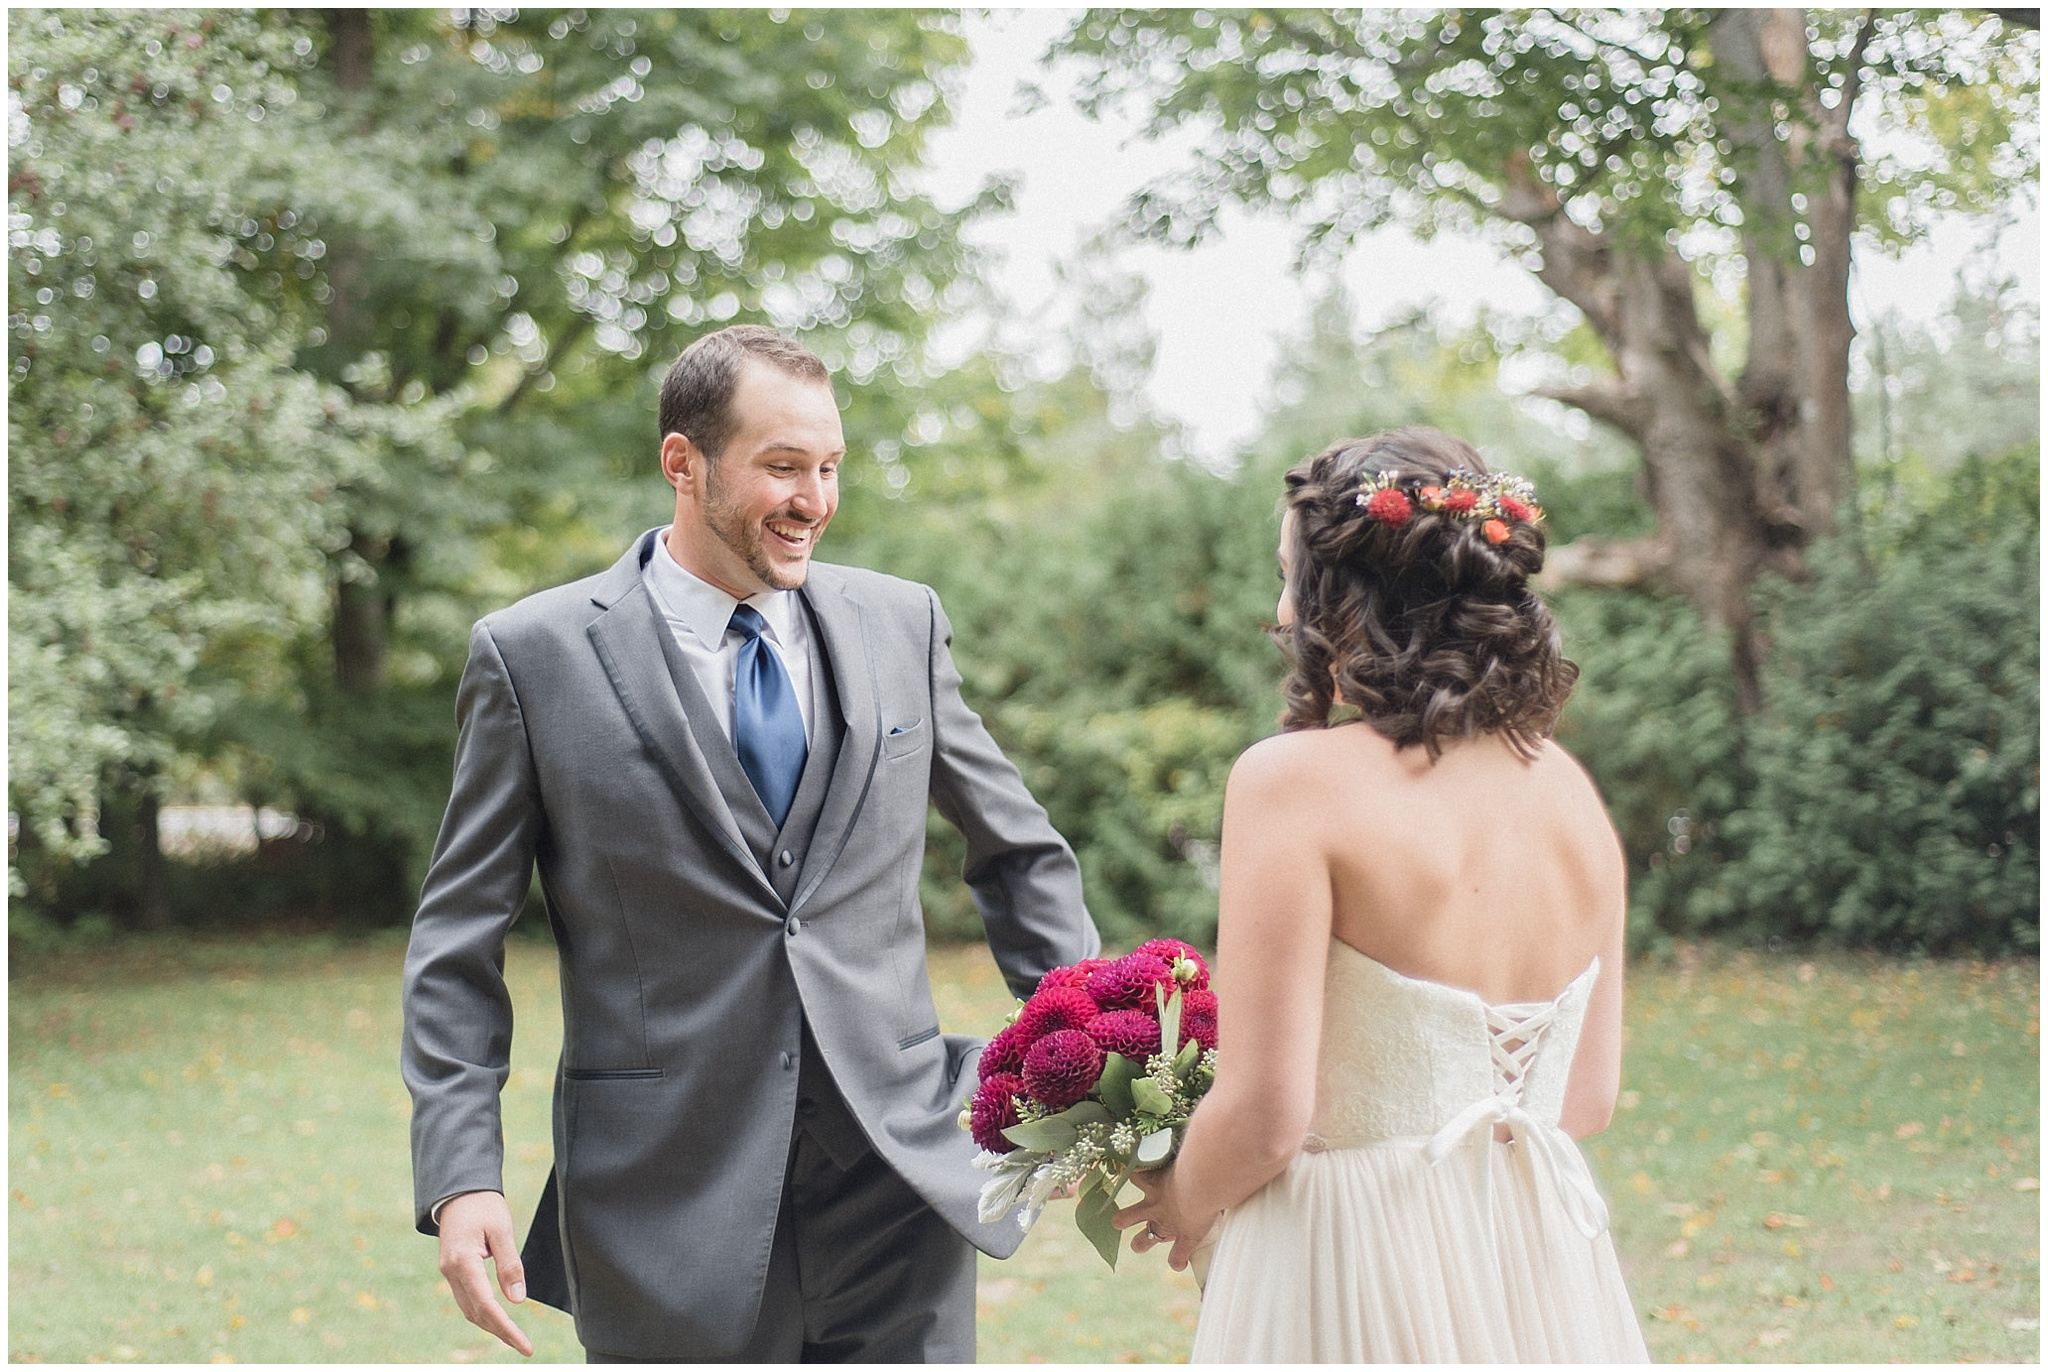 Bride and groom first look   The first look at this LazyDayz Bed & Breakfast wedding by Jenn Kavanagh Photography